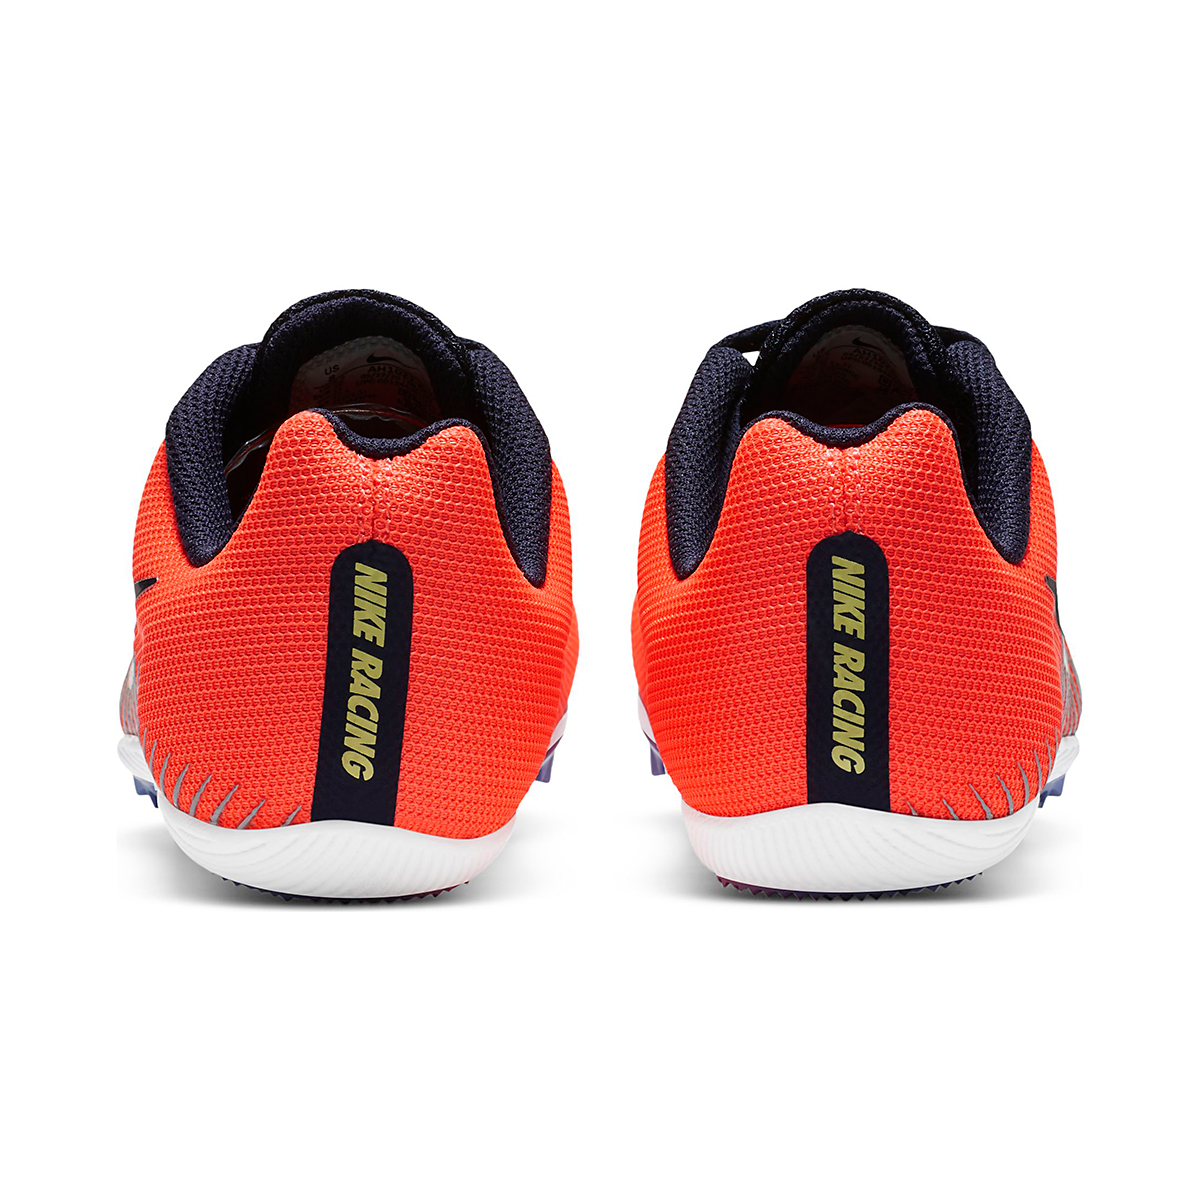 Women's Nike Zoom Rival M 9 Track Spikes - Color: Bright Mango/Blackend Blue - Size: 4 - Width: Regular, Bright Mango/Blackend Blue, large, image 5